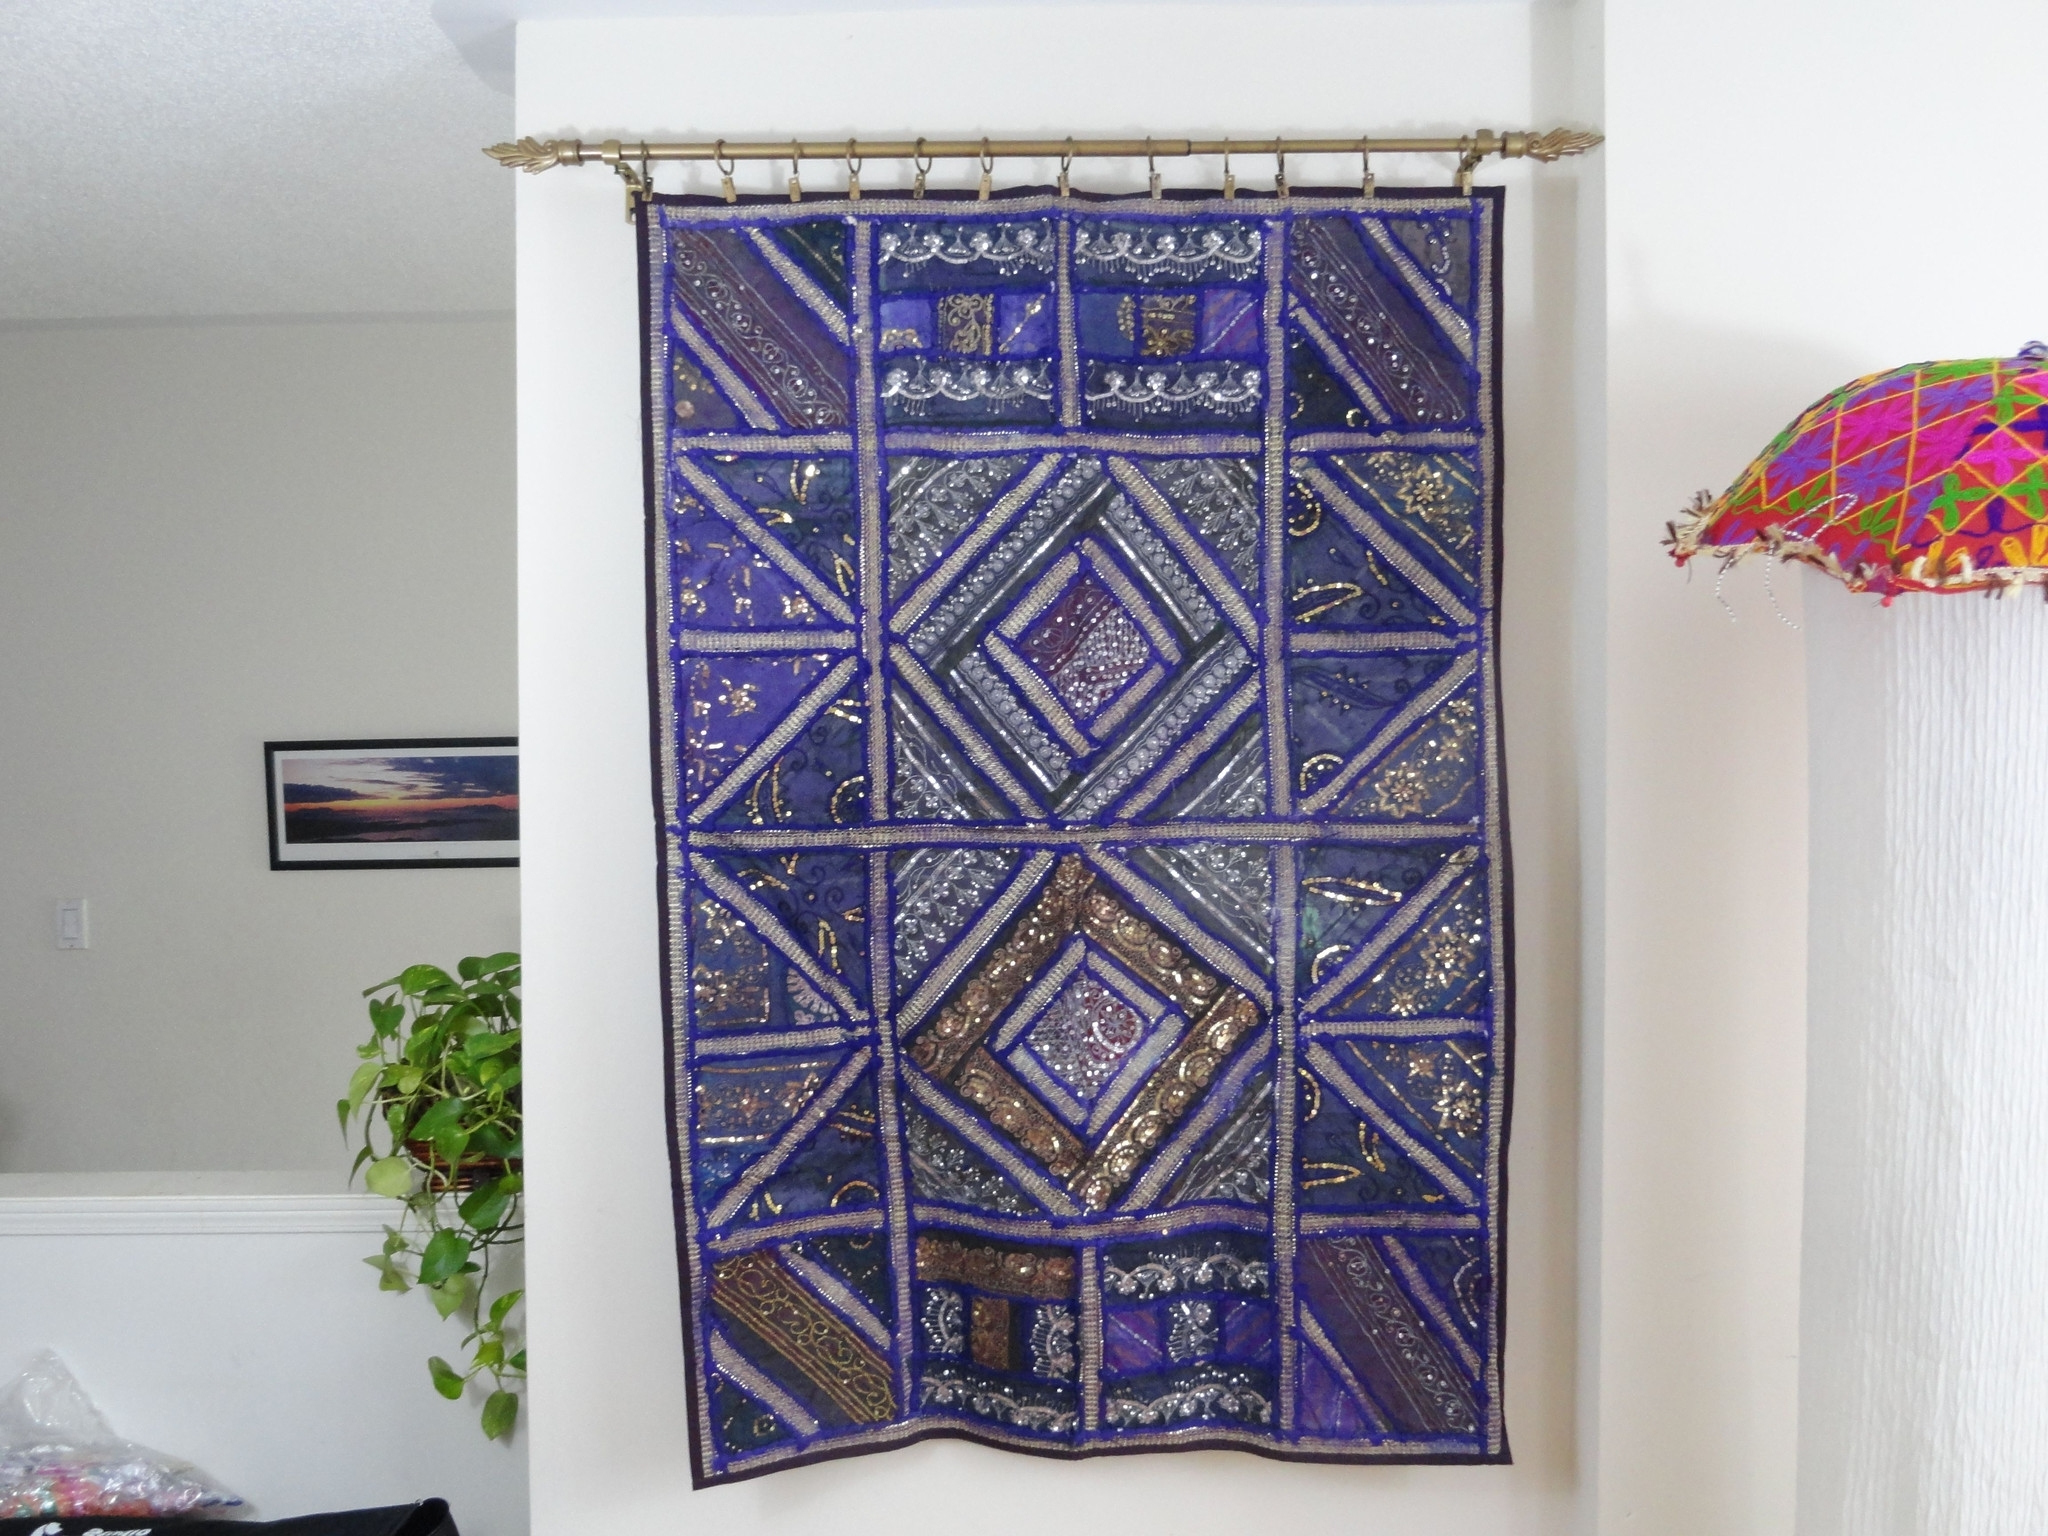 Preferred Fabric Wall Hangings Art Inside Ethnic Gifts For The Home  Fabric Wall Tapestry (View 14 of 15)